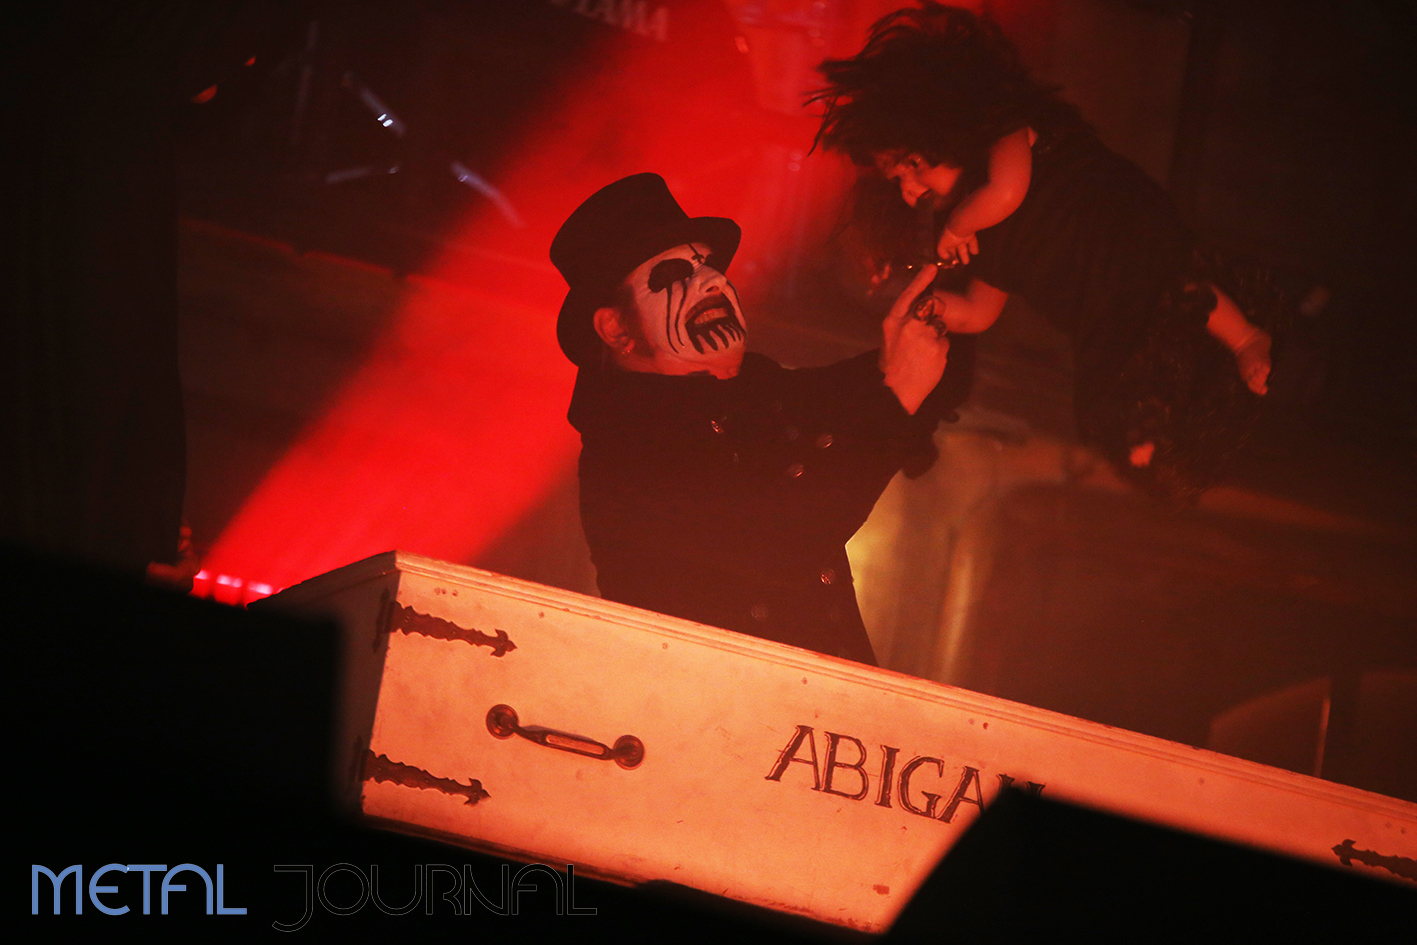 king diamond - metal journal rock fest barcelona 2019 pic 8